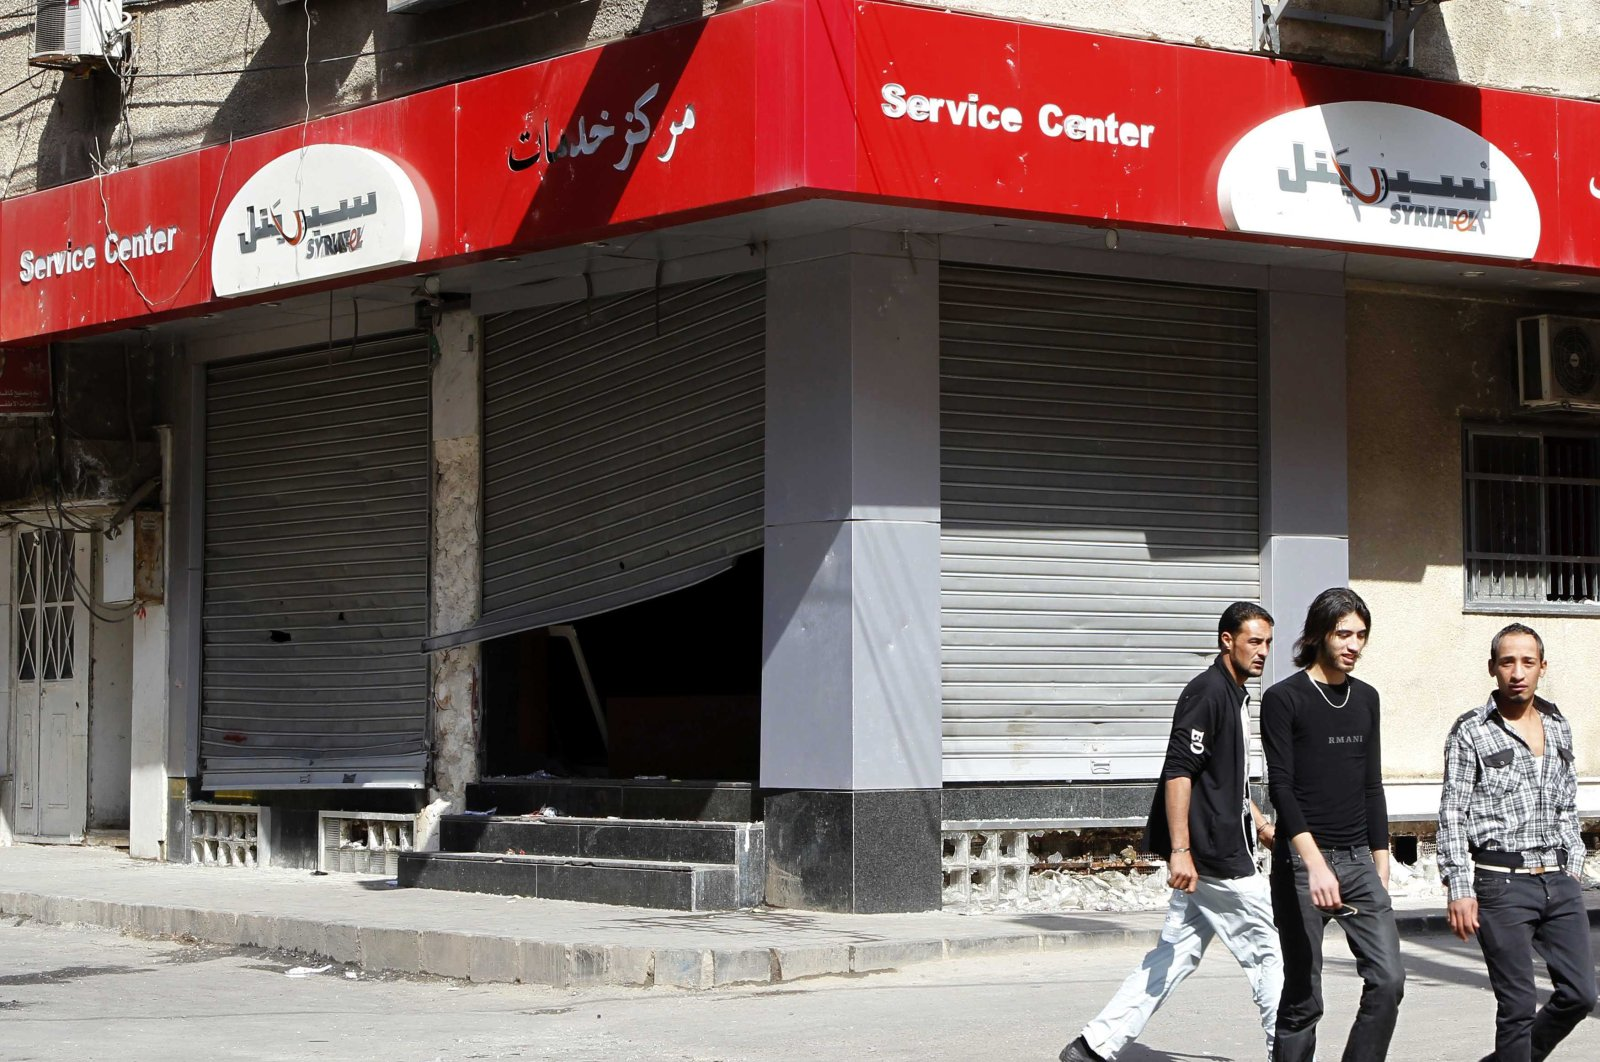 People walk past the looted premises of cellphone company Syriatel, which is owned by Rami Makhlouf, the cousin of Syrian dictator Bashar Assad, in Daraa, Syria, March 21, 2011. (Reuters Photo)